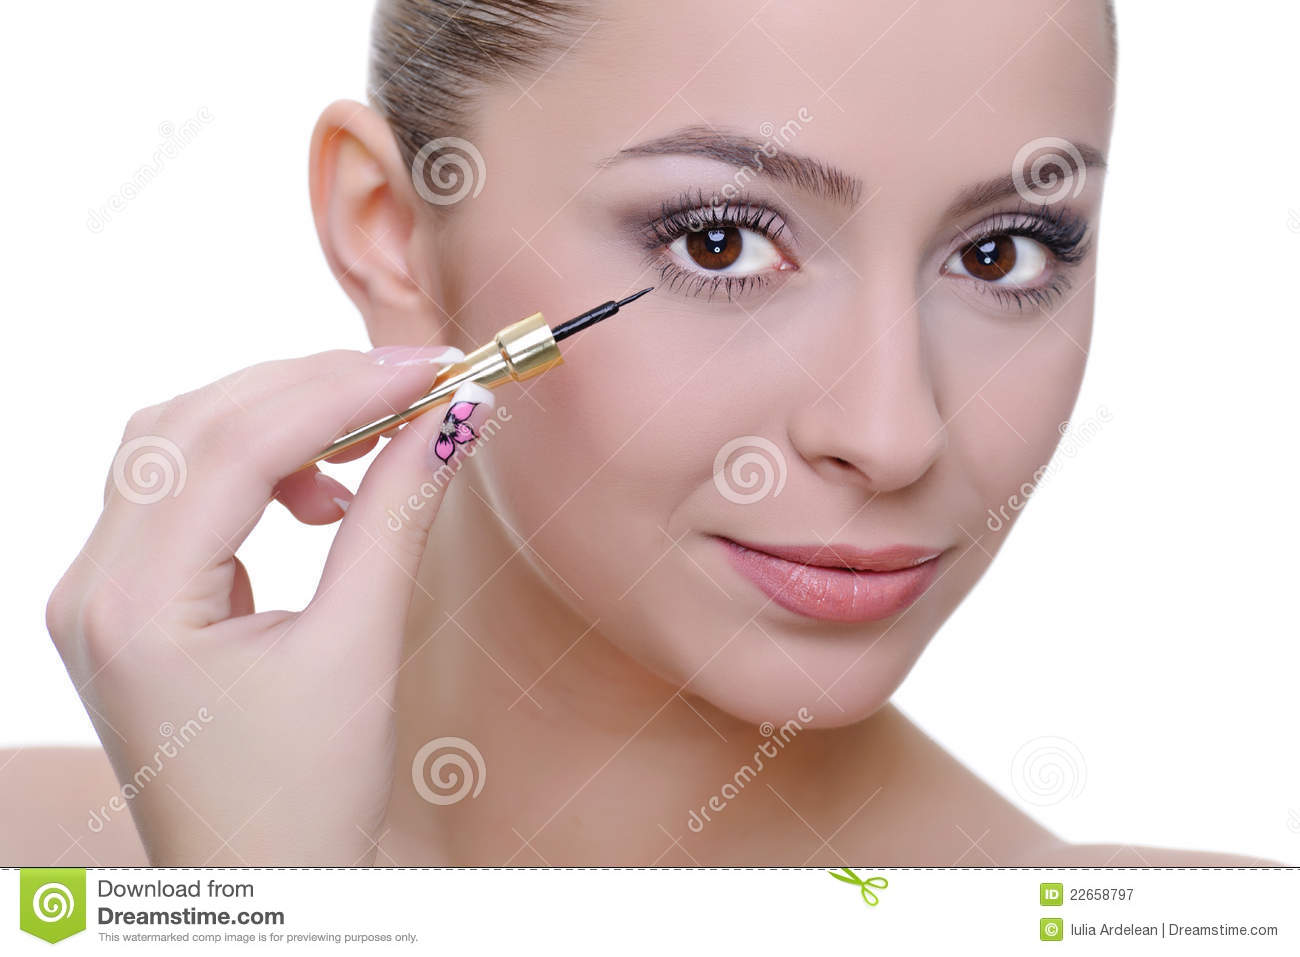 Application de l eye-liner